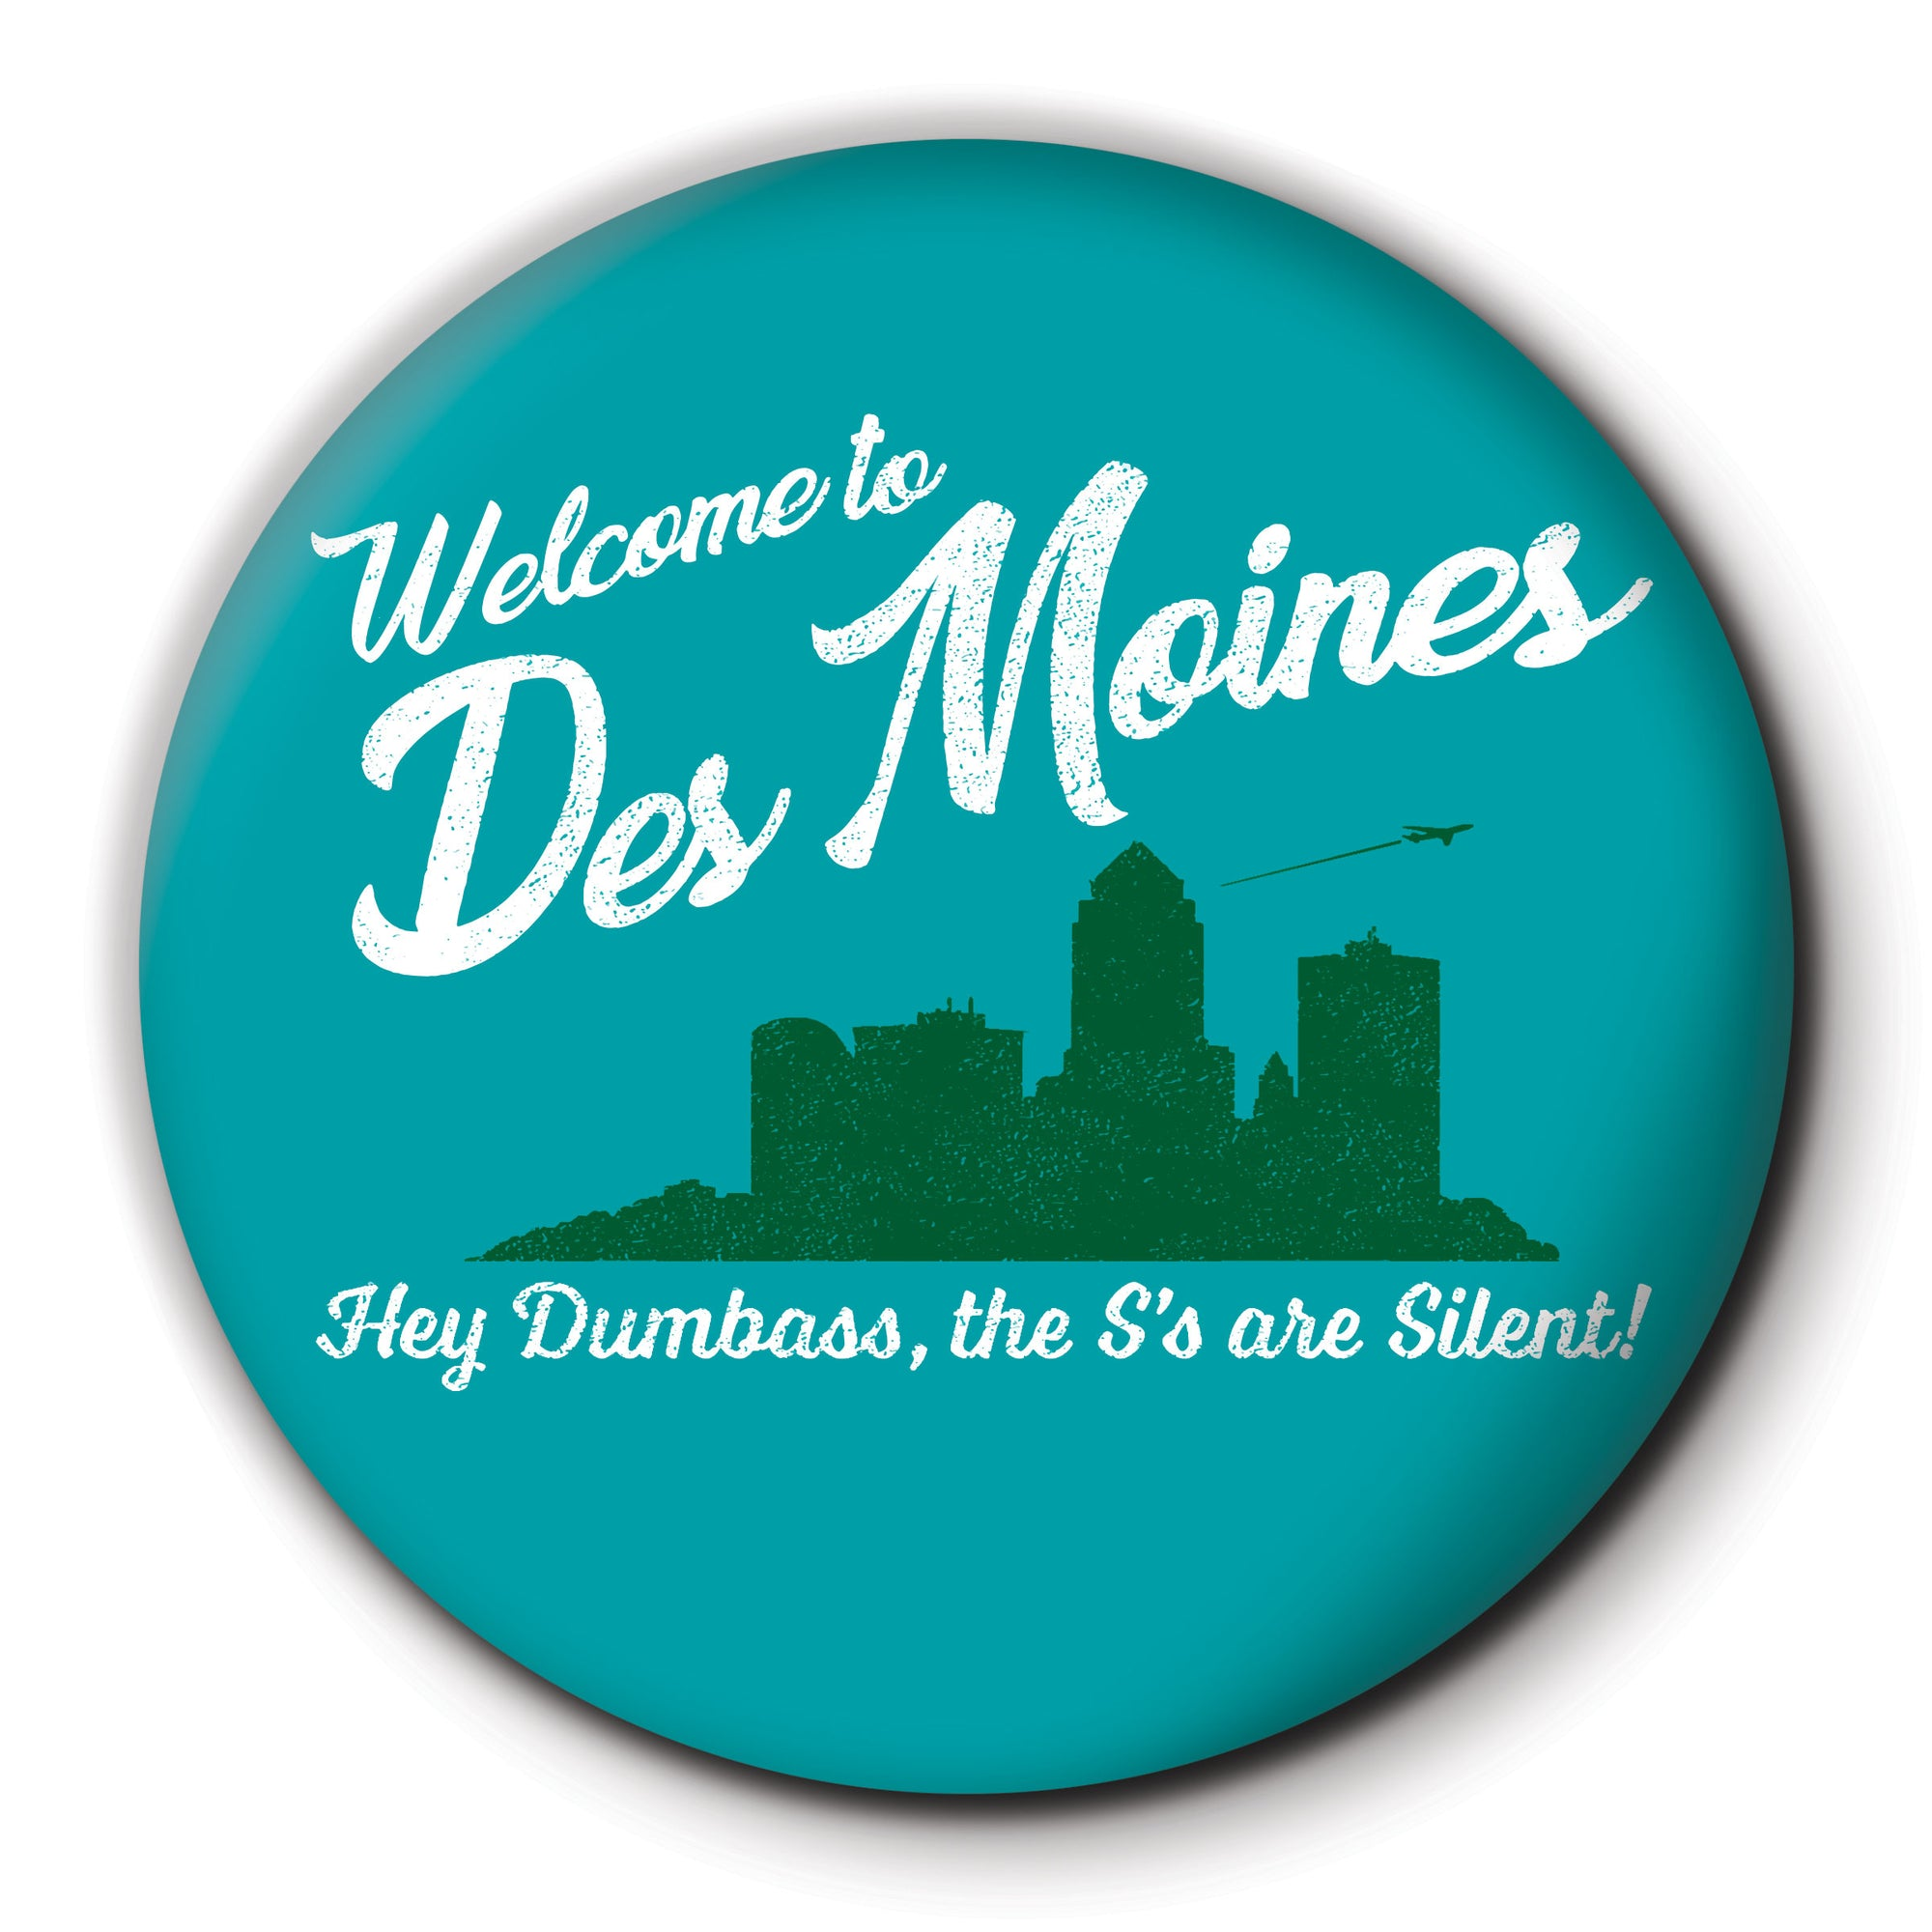 Des Moines S's are Silent Round Coaster